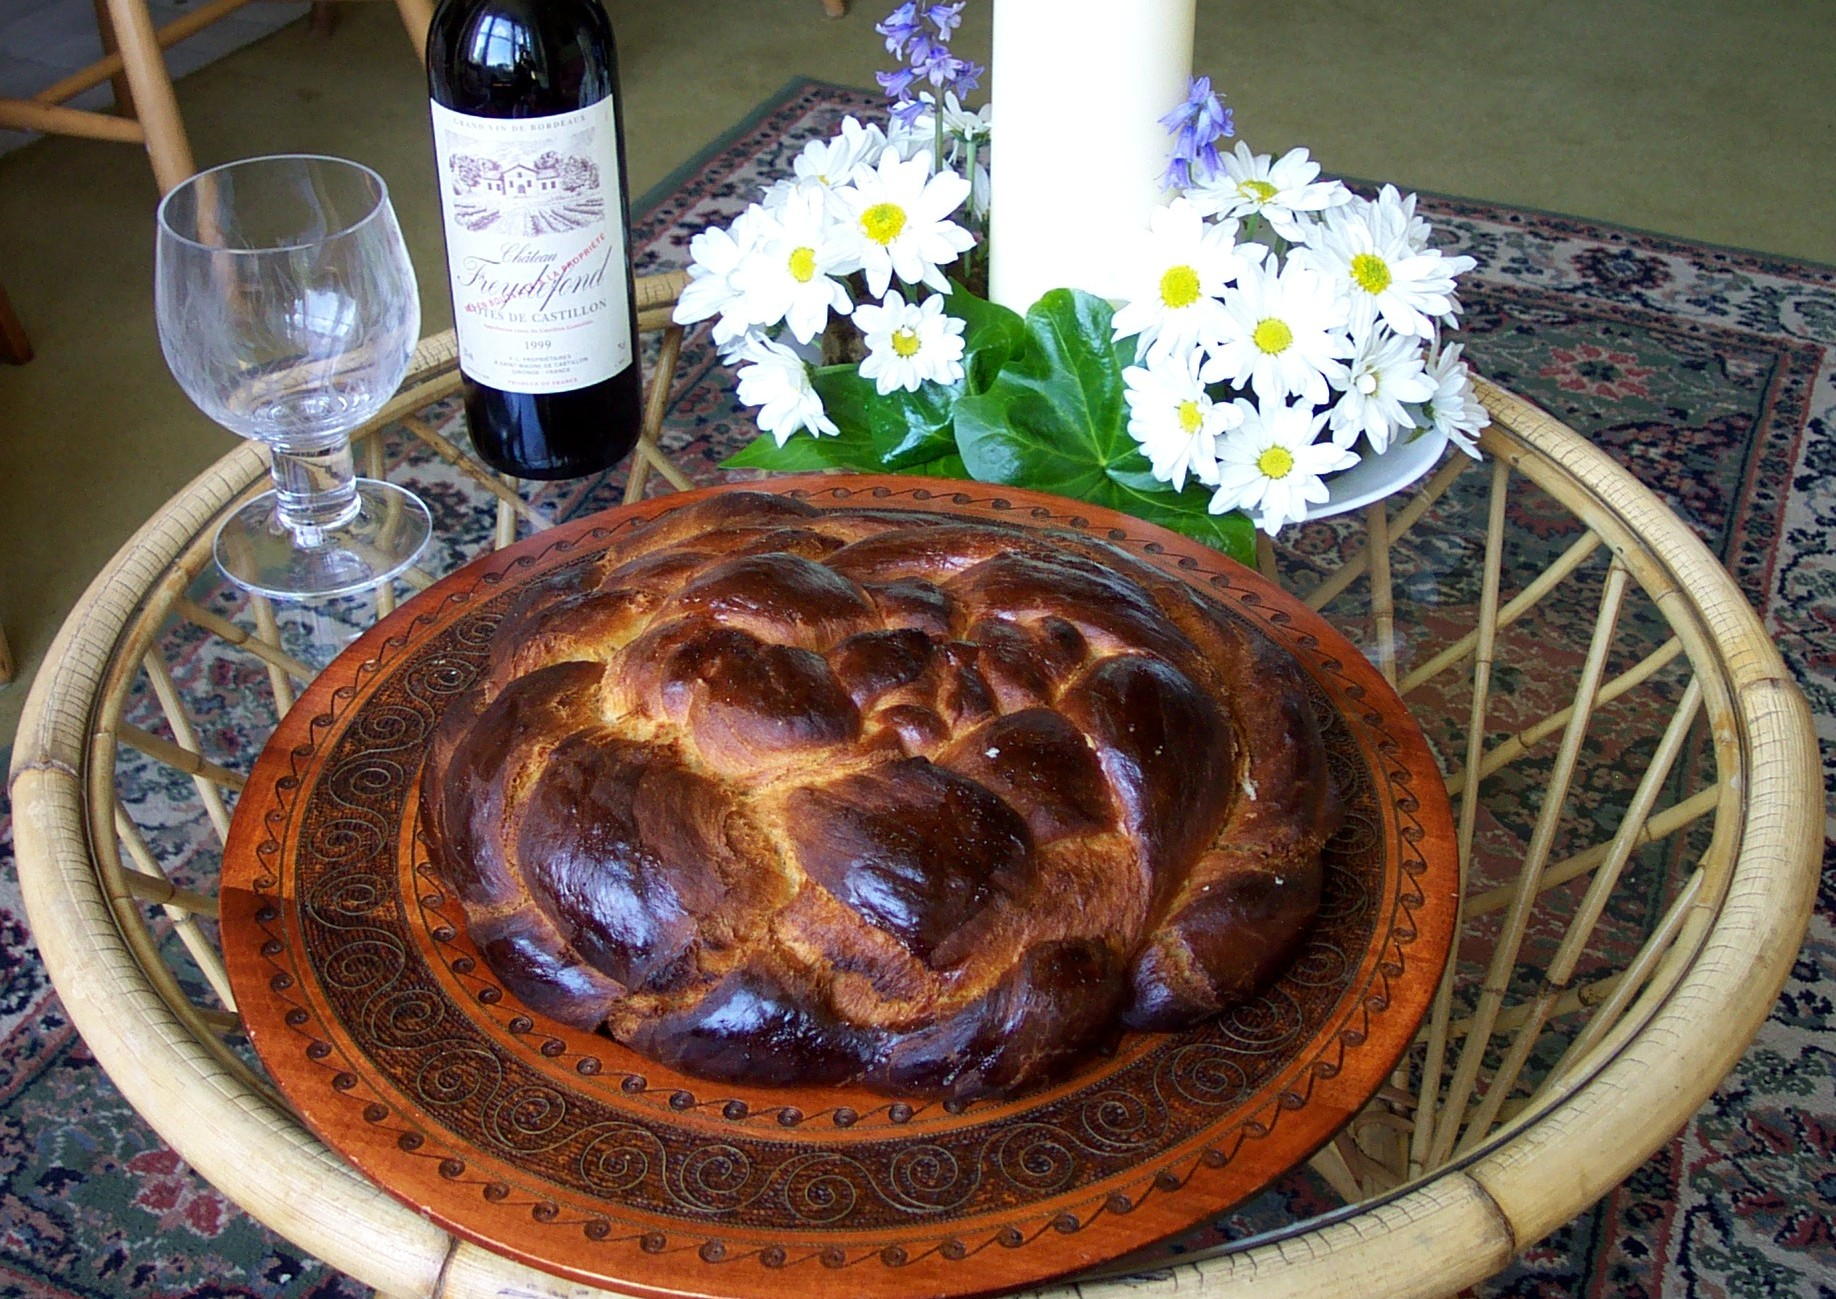 Lord's Day Bread